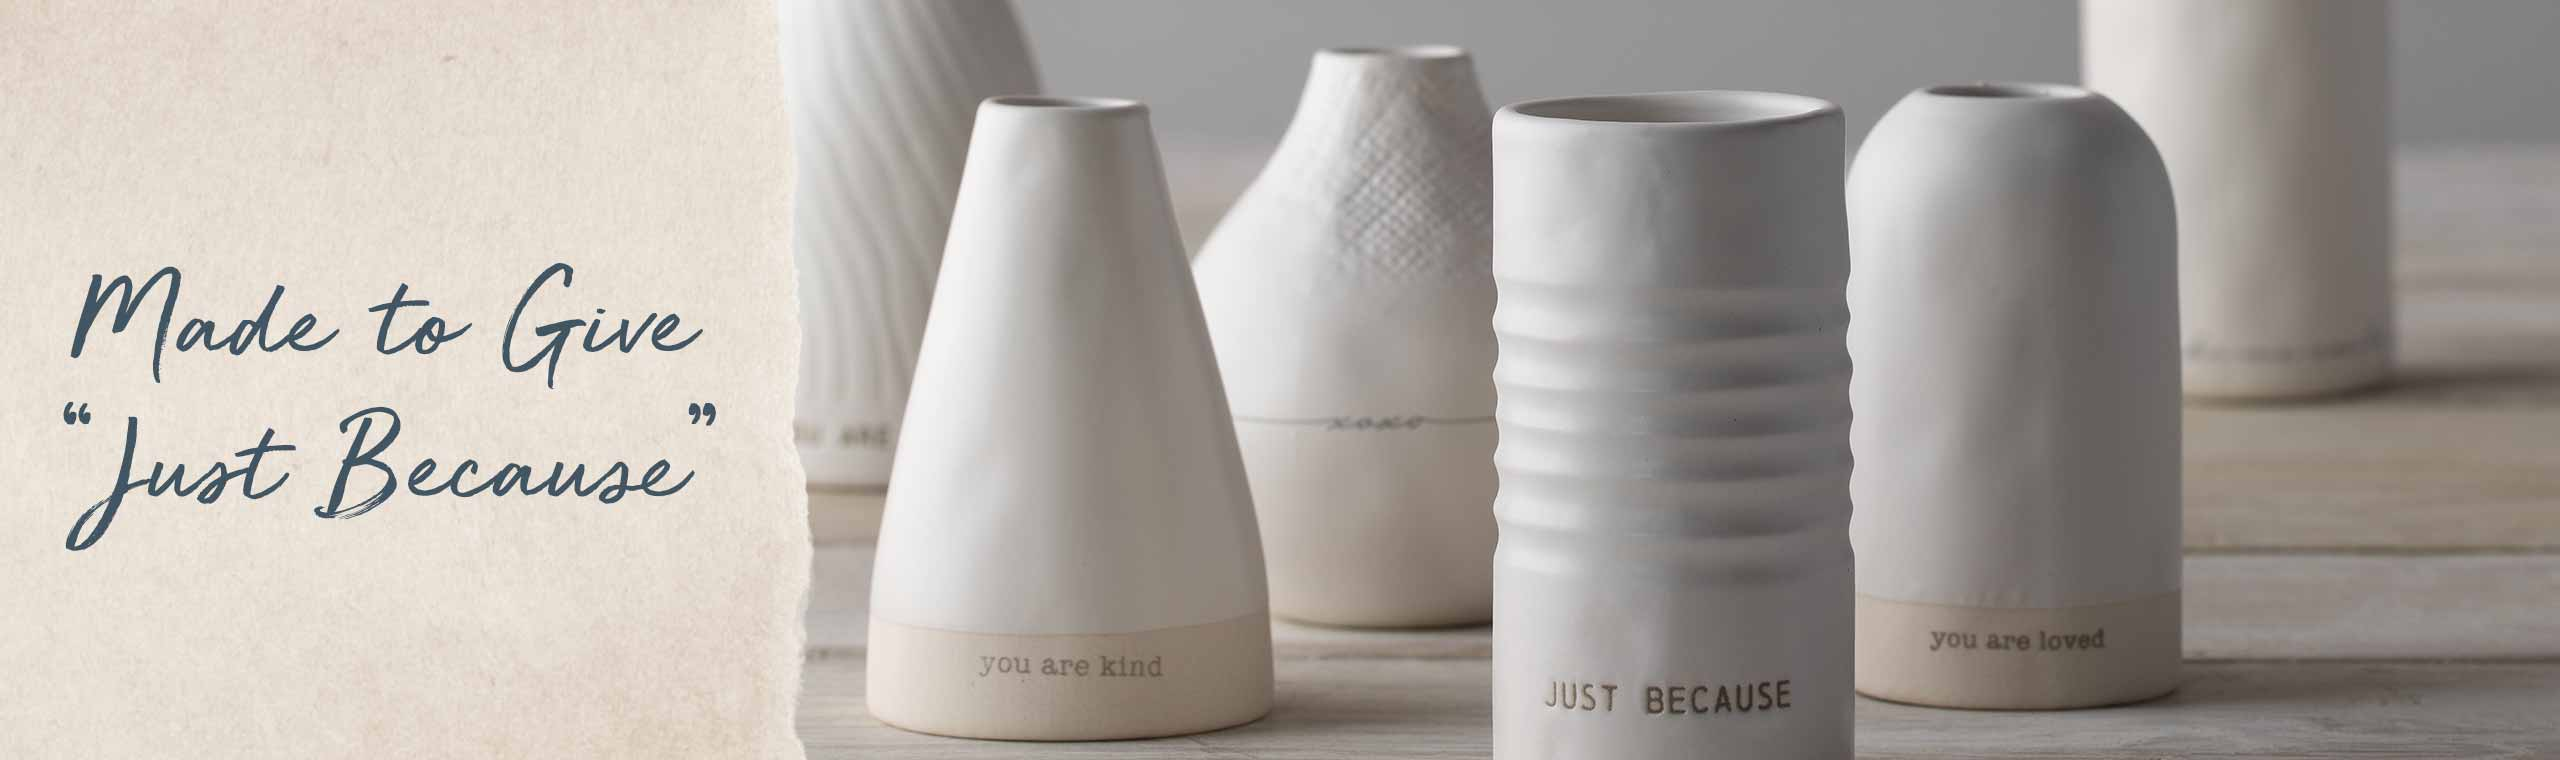 Made to give just because, ceramic vases with compliments on them